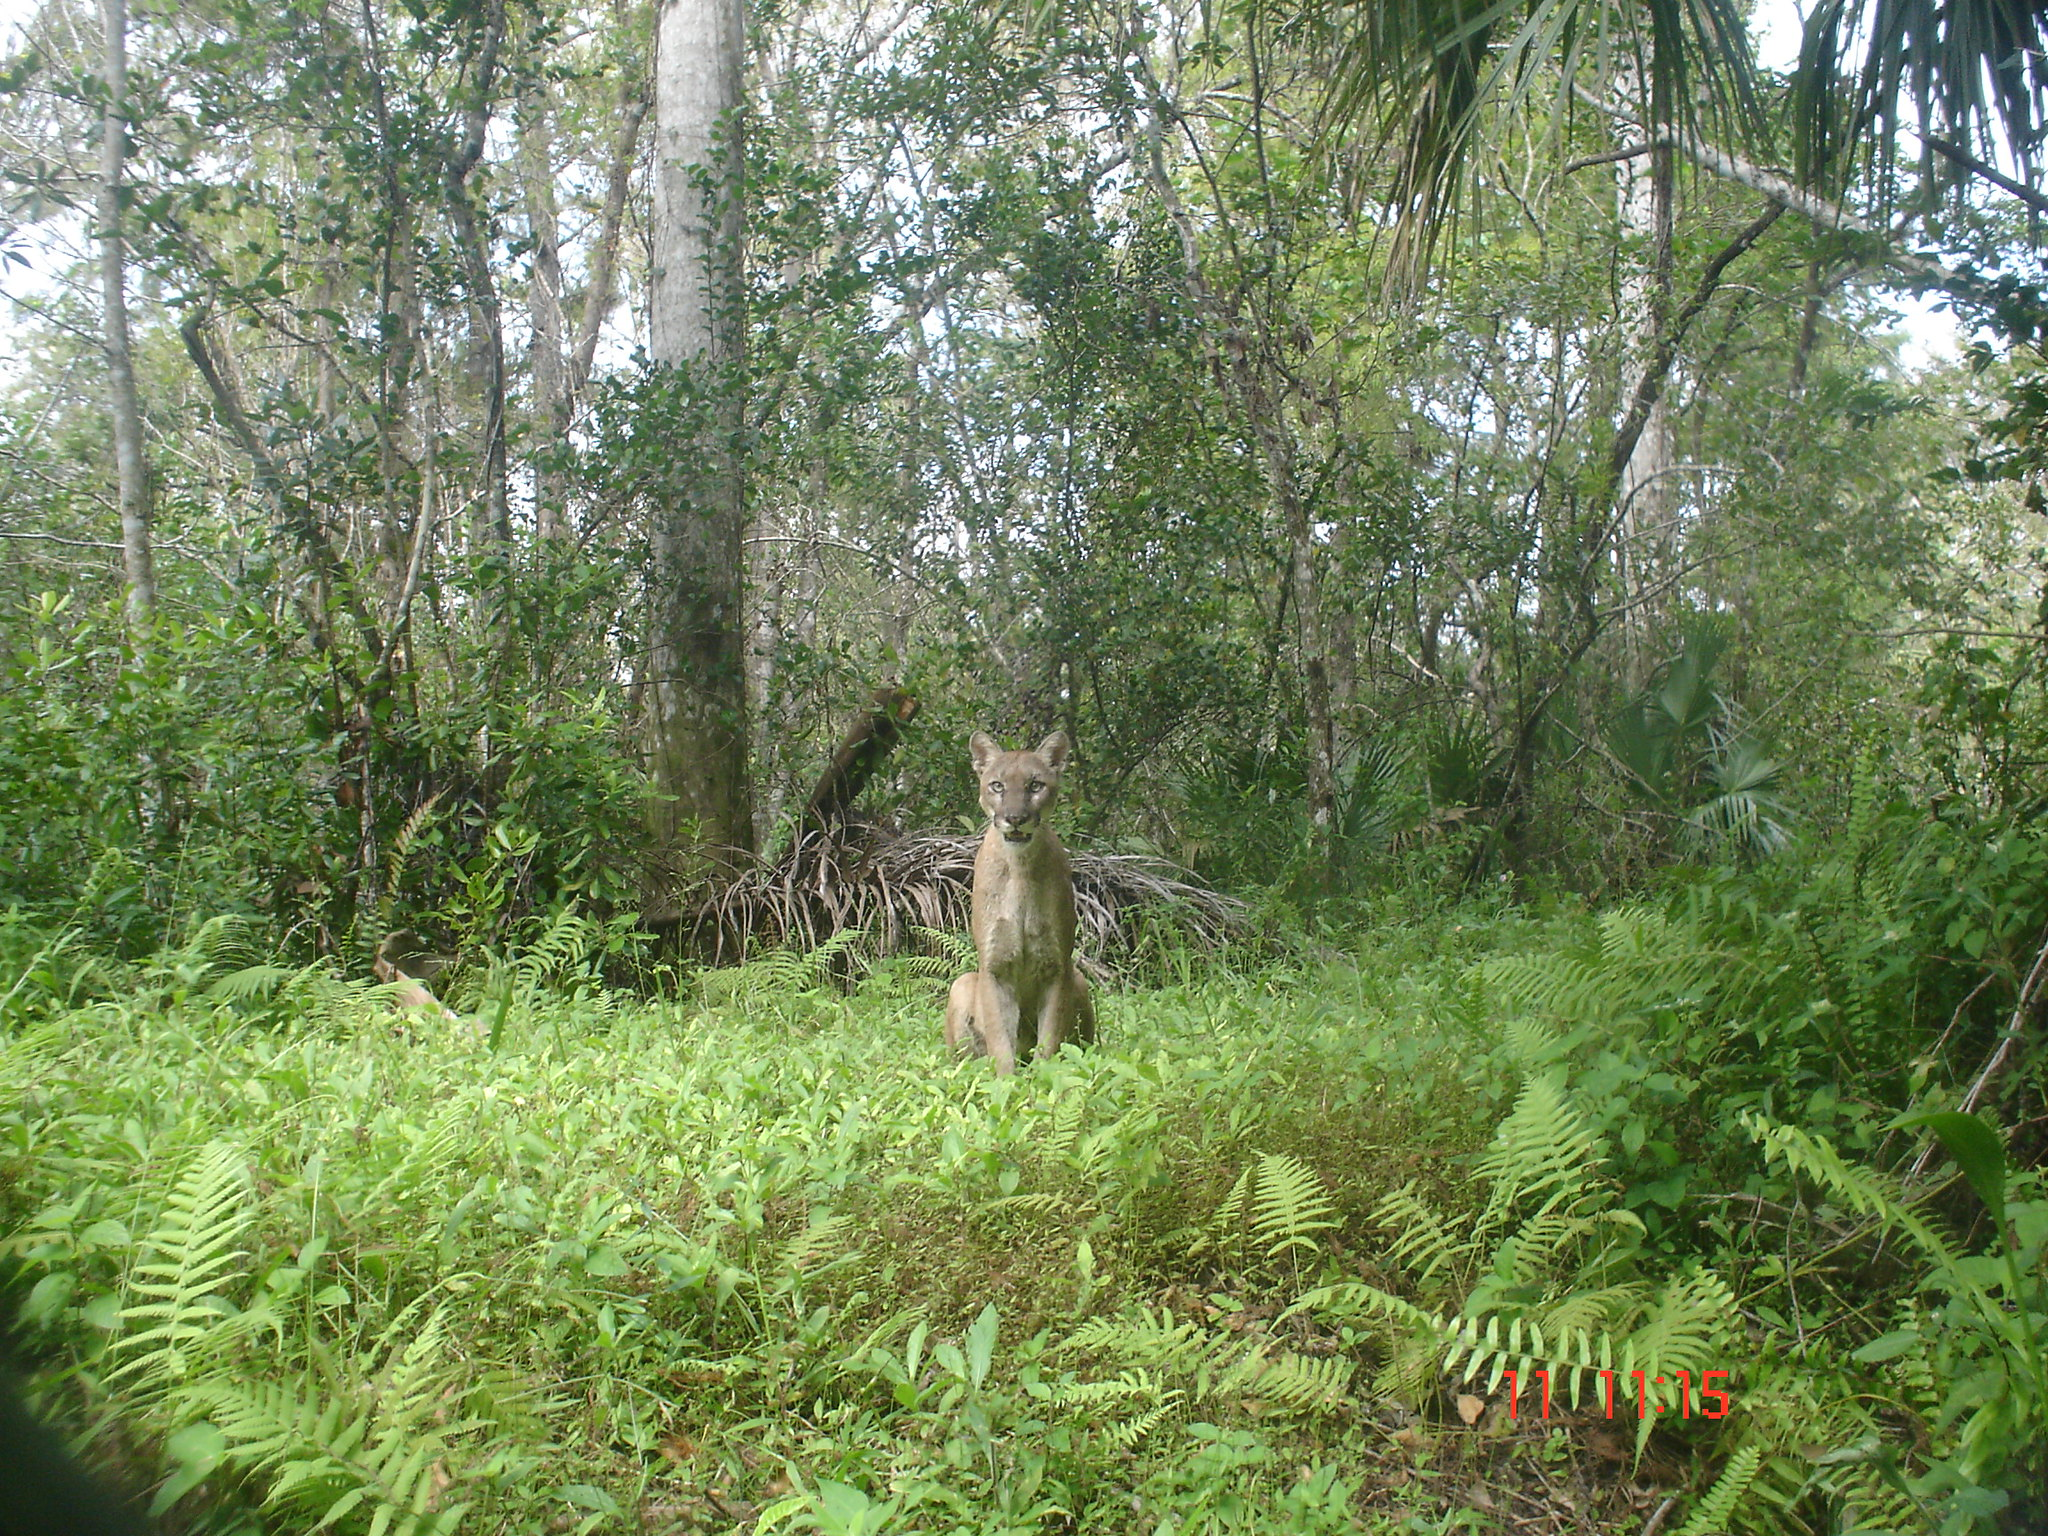 A photo of an adult male Florida Panther in Fakahatchee Strand Preserve State Park, 2006. Credit: David Shindle for the Conservancy of Southwest Florida Learn more about the Florida panther at www.fws.gov/southeast/wildlife/mammal/florida-panther/